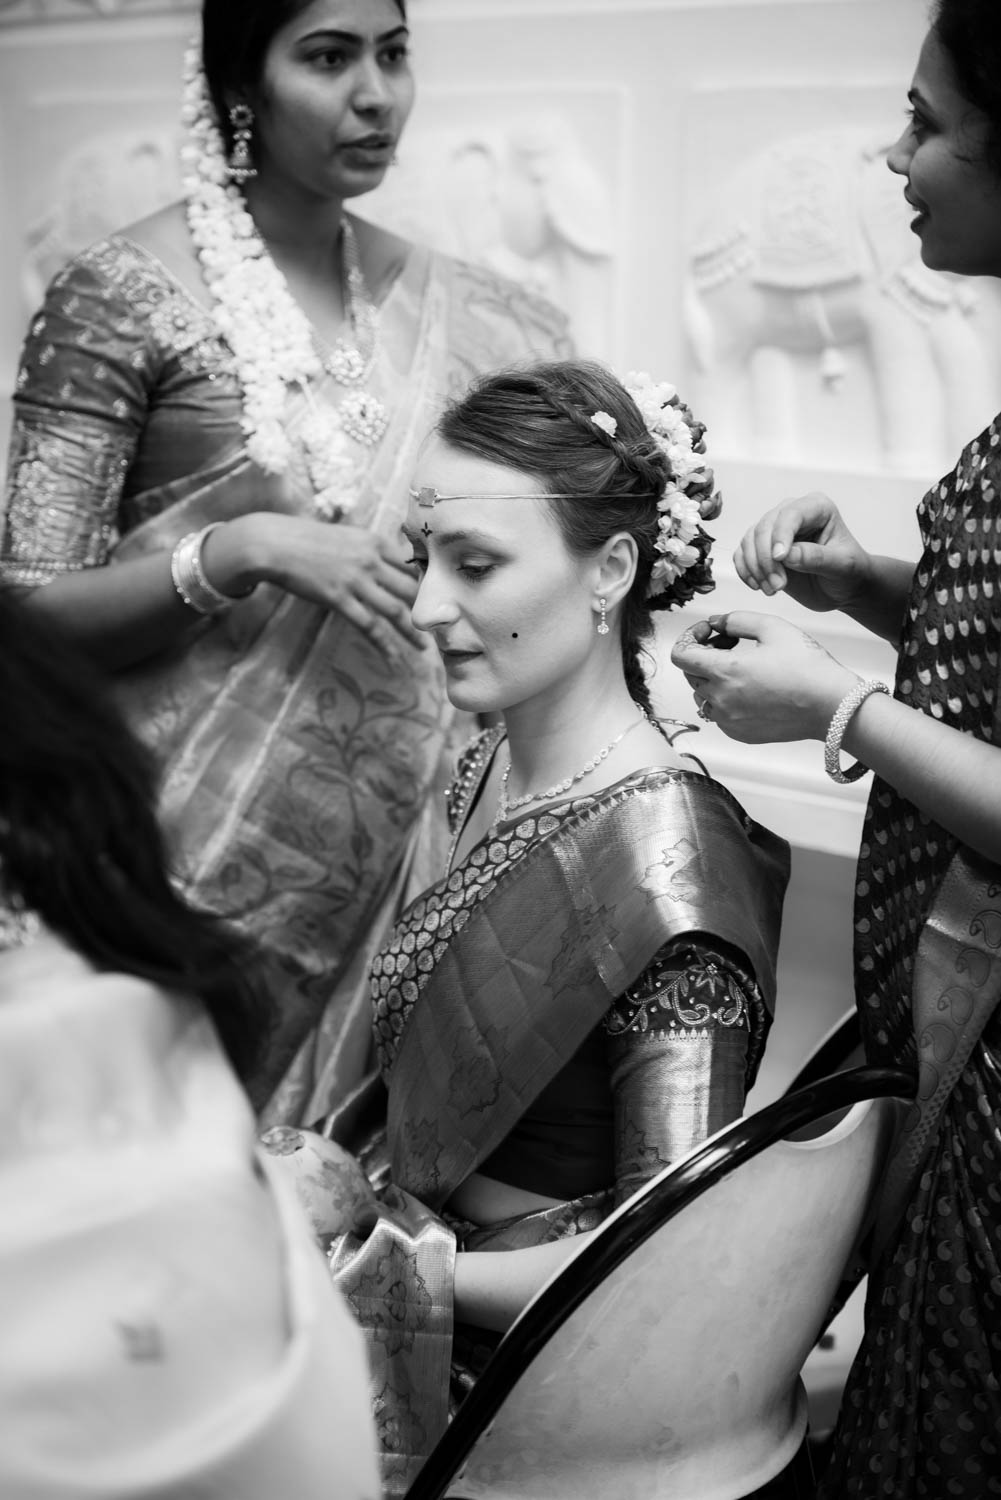 ecaterina-chandu-indian-wedding4.jpg